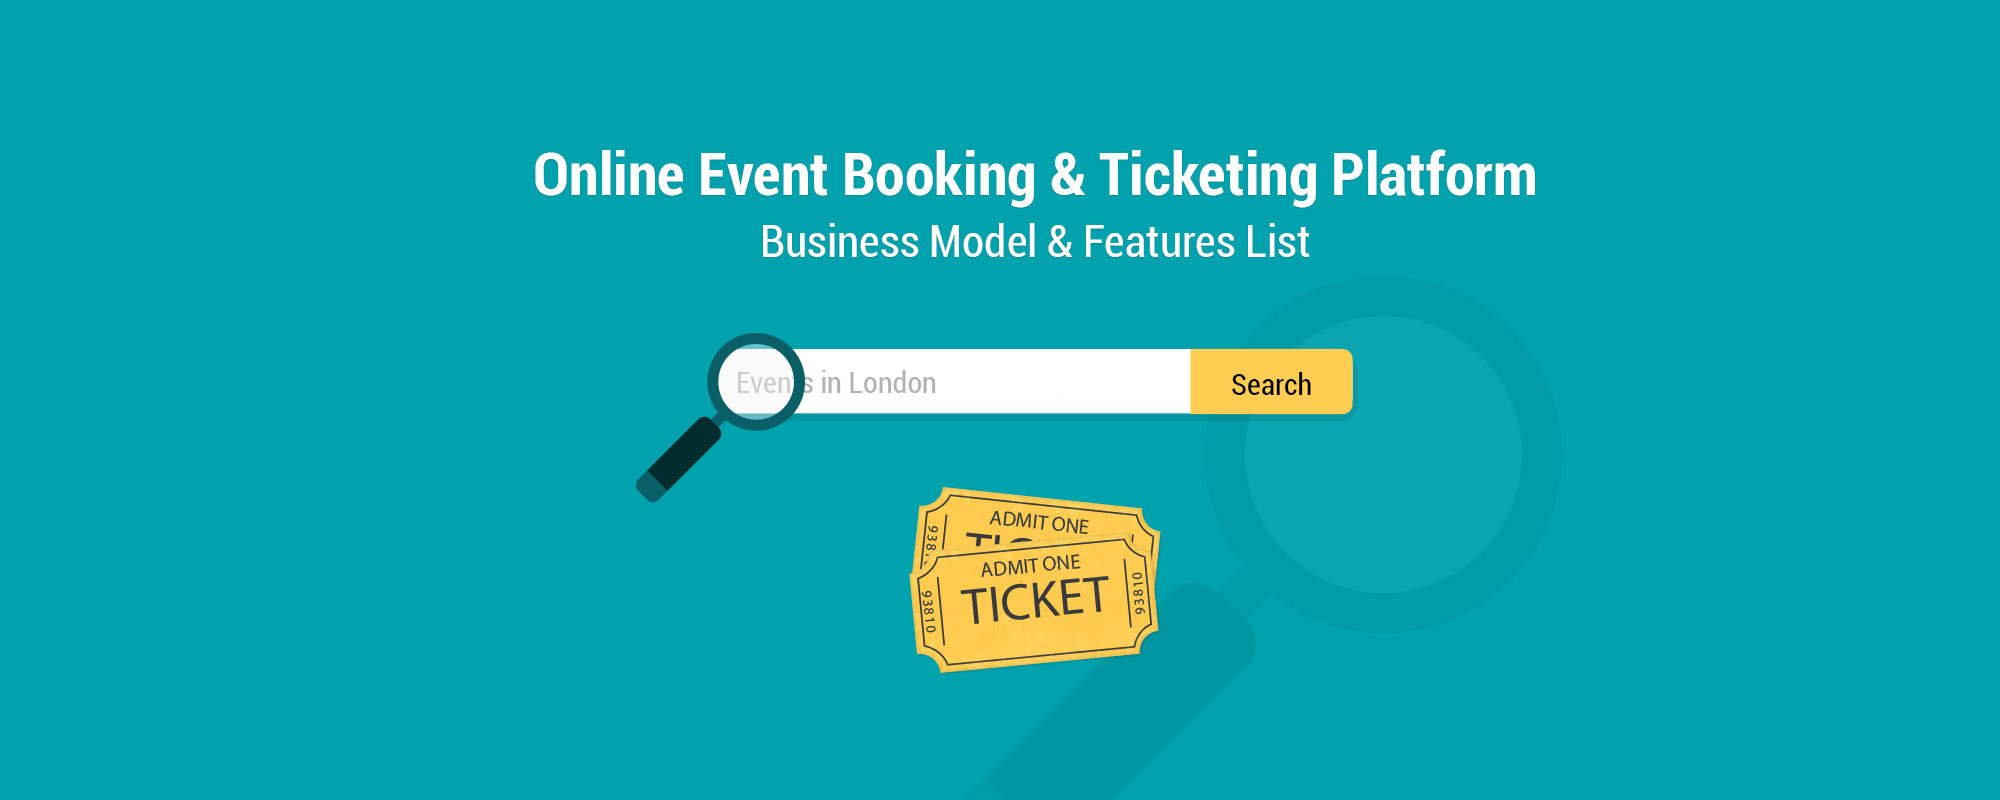 Launch Event Discovery and Marketing Platform with Smart Website Features